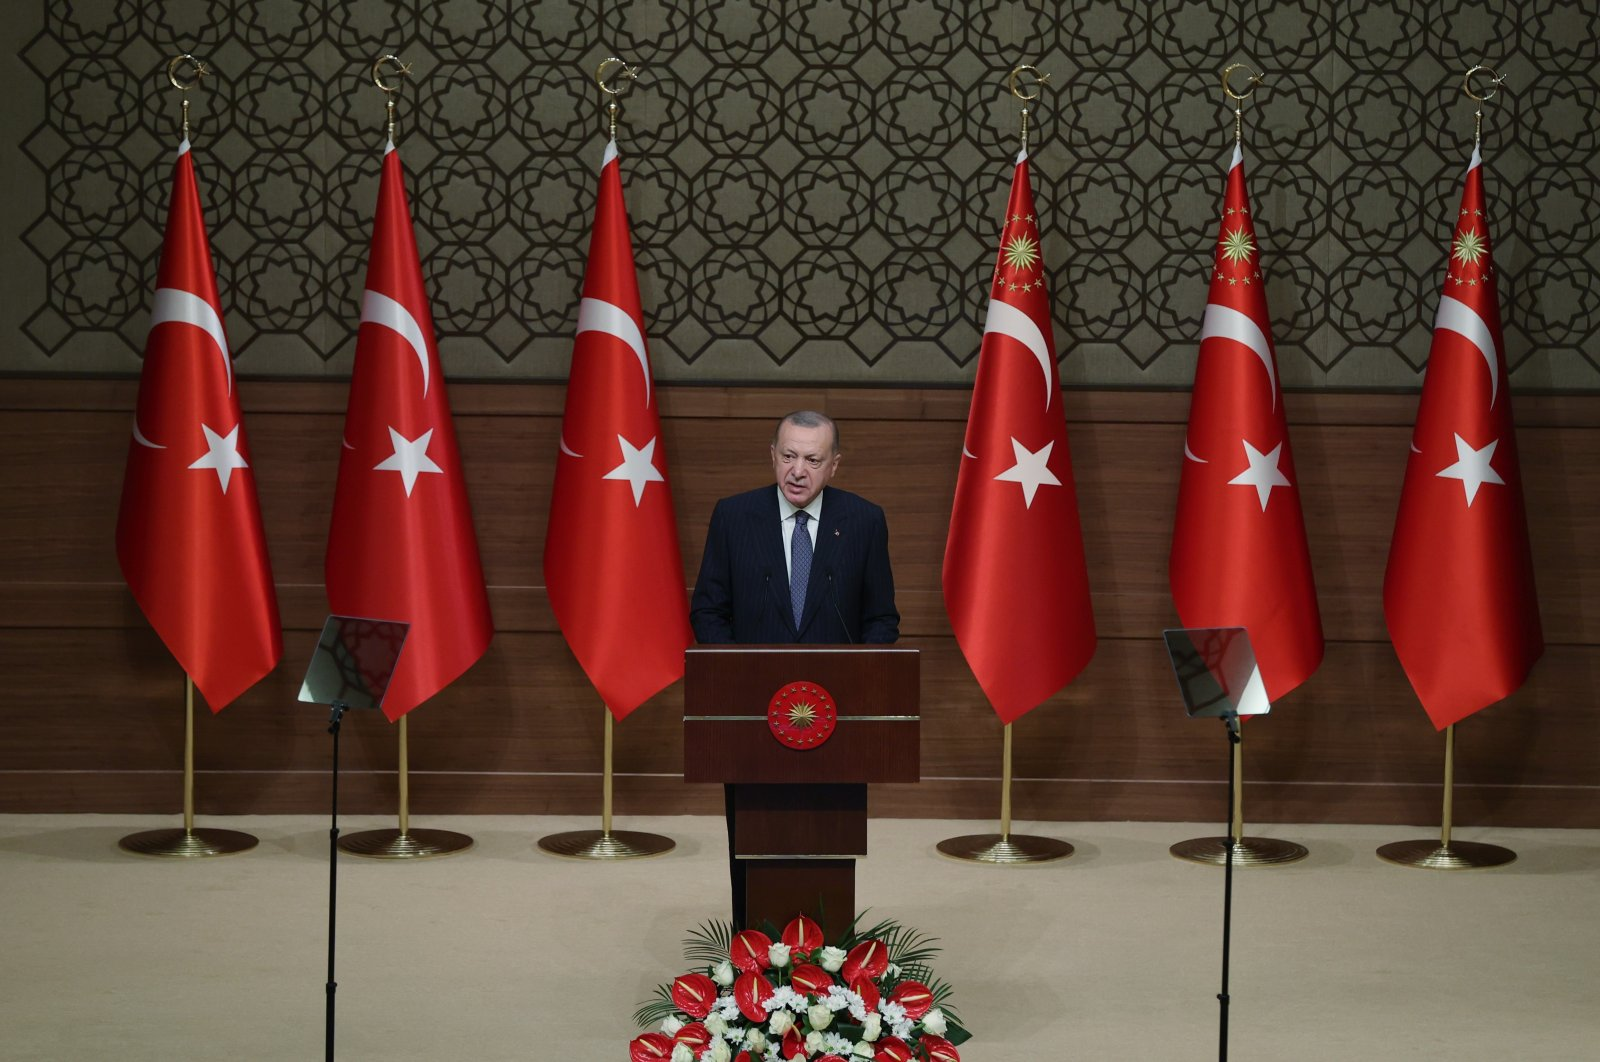 Turkish President Recep Tayyip Erdoğan speaks at a ceremony to inaugurate water projects in four Turkish provinces at the Presidential Complex, Ankara, Turkey, July 5, 2021. (IHA Photo)